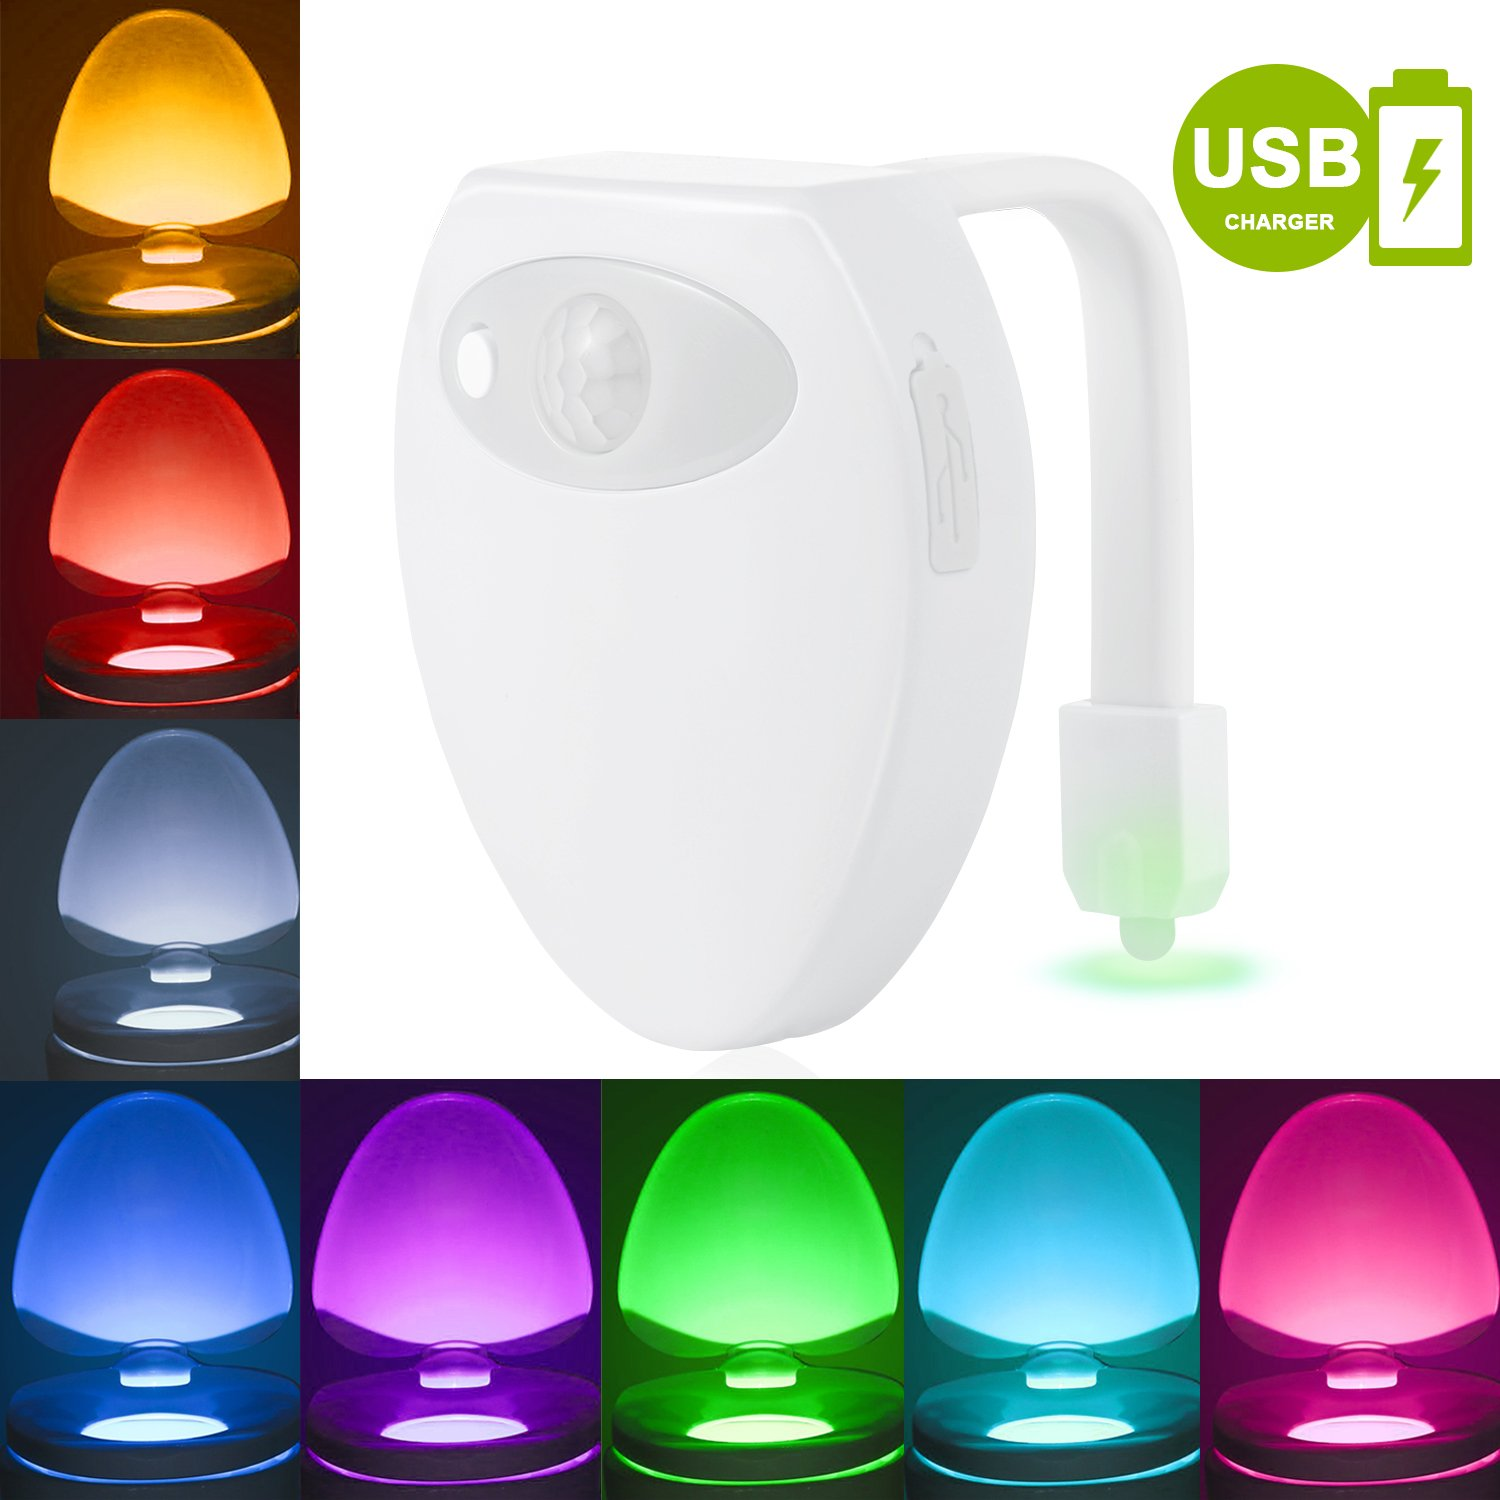 Cynkie Rechargeable Toilet Night Light with Waterproof Design, LED Toilet Night Light, Toilet Bowl Light, Motion Activated in Darkness Only